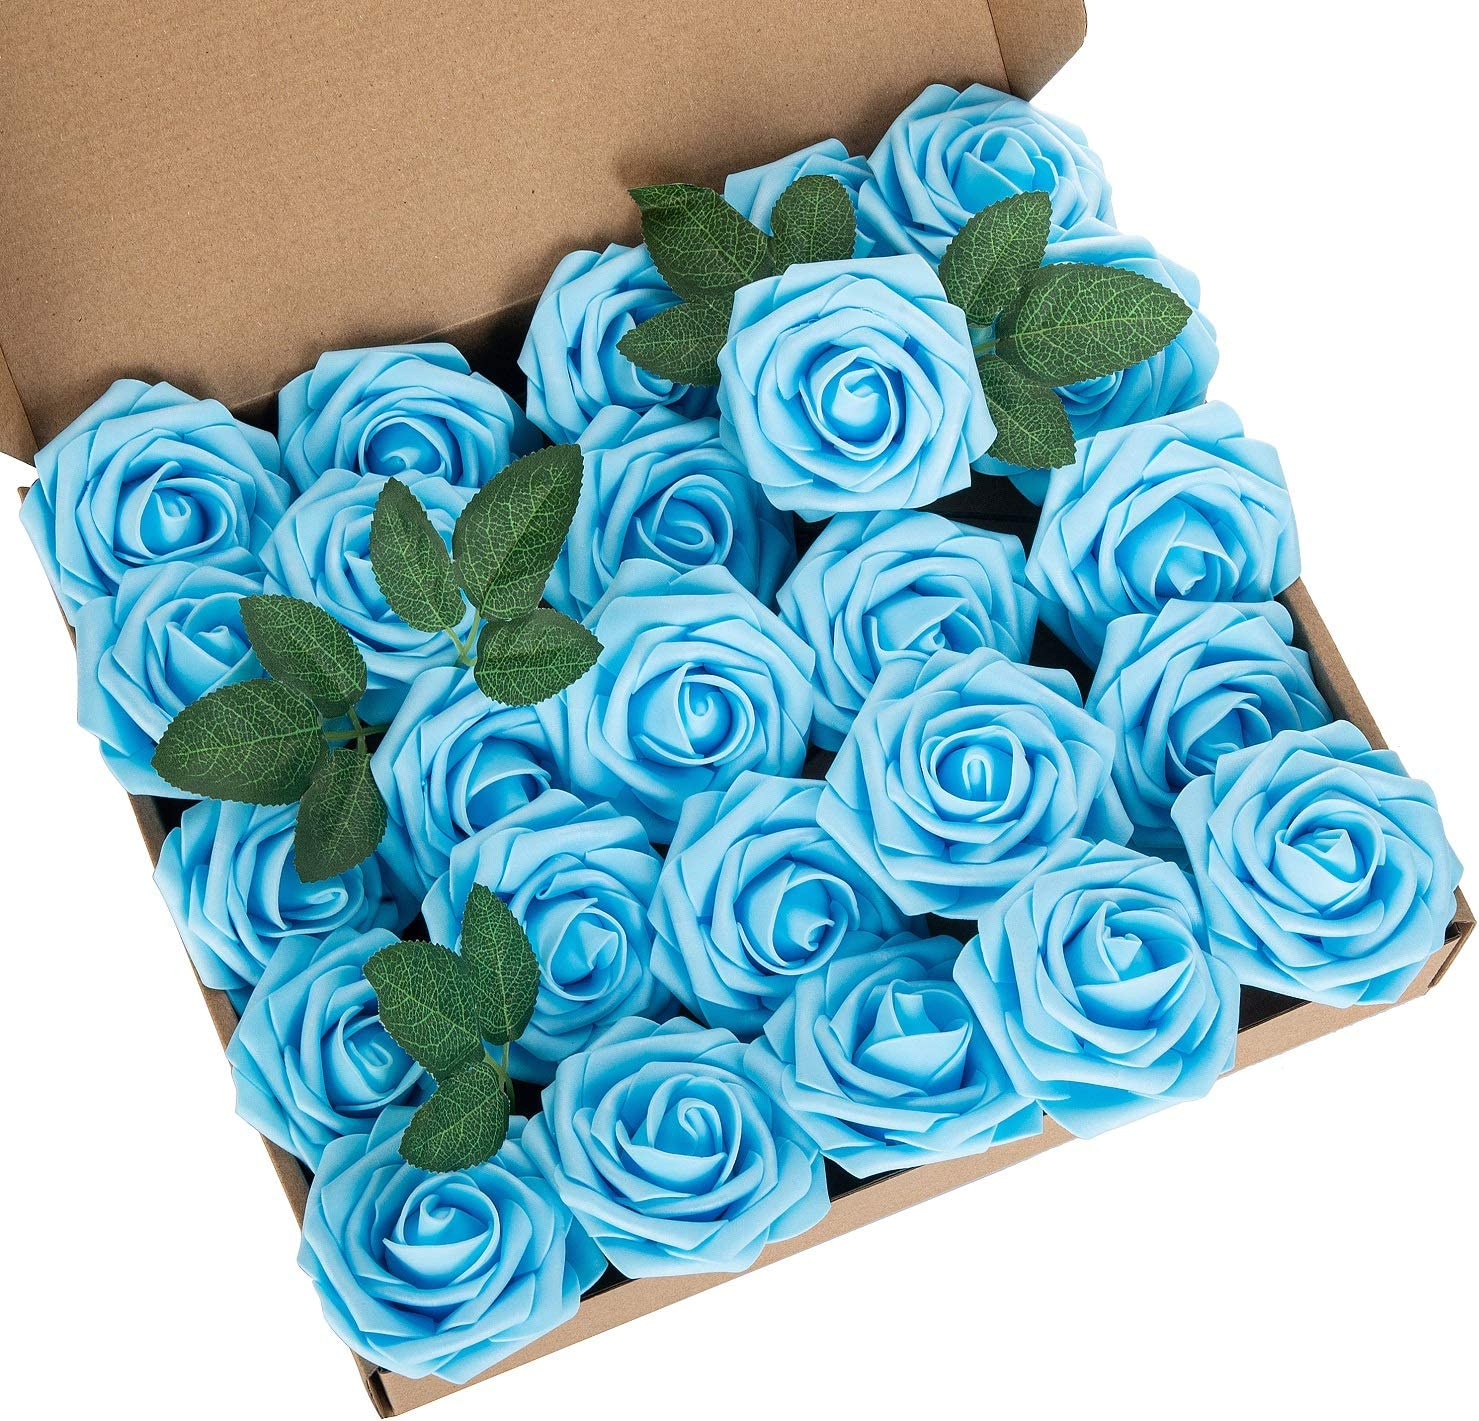 LuLuHouse 25pcs Artificial Flower Foam Rose Blue Real Touch Roses Flower Heads with Stem for DIY Wedding Bouquets Centerpieces Arrangements Party Baby Shower Home Decor (25, Blue)